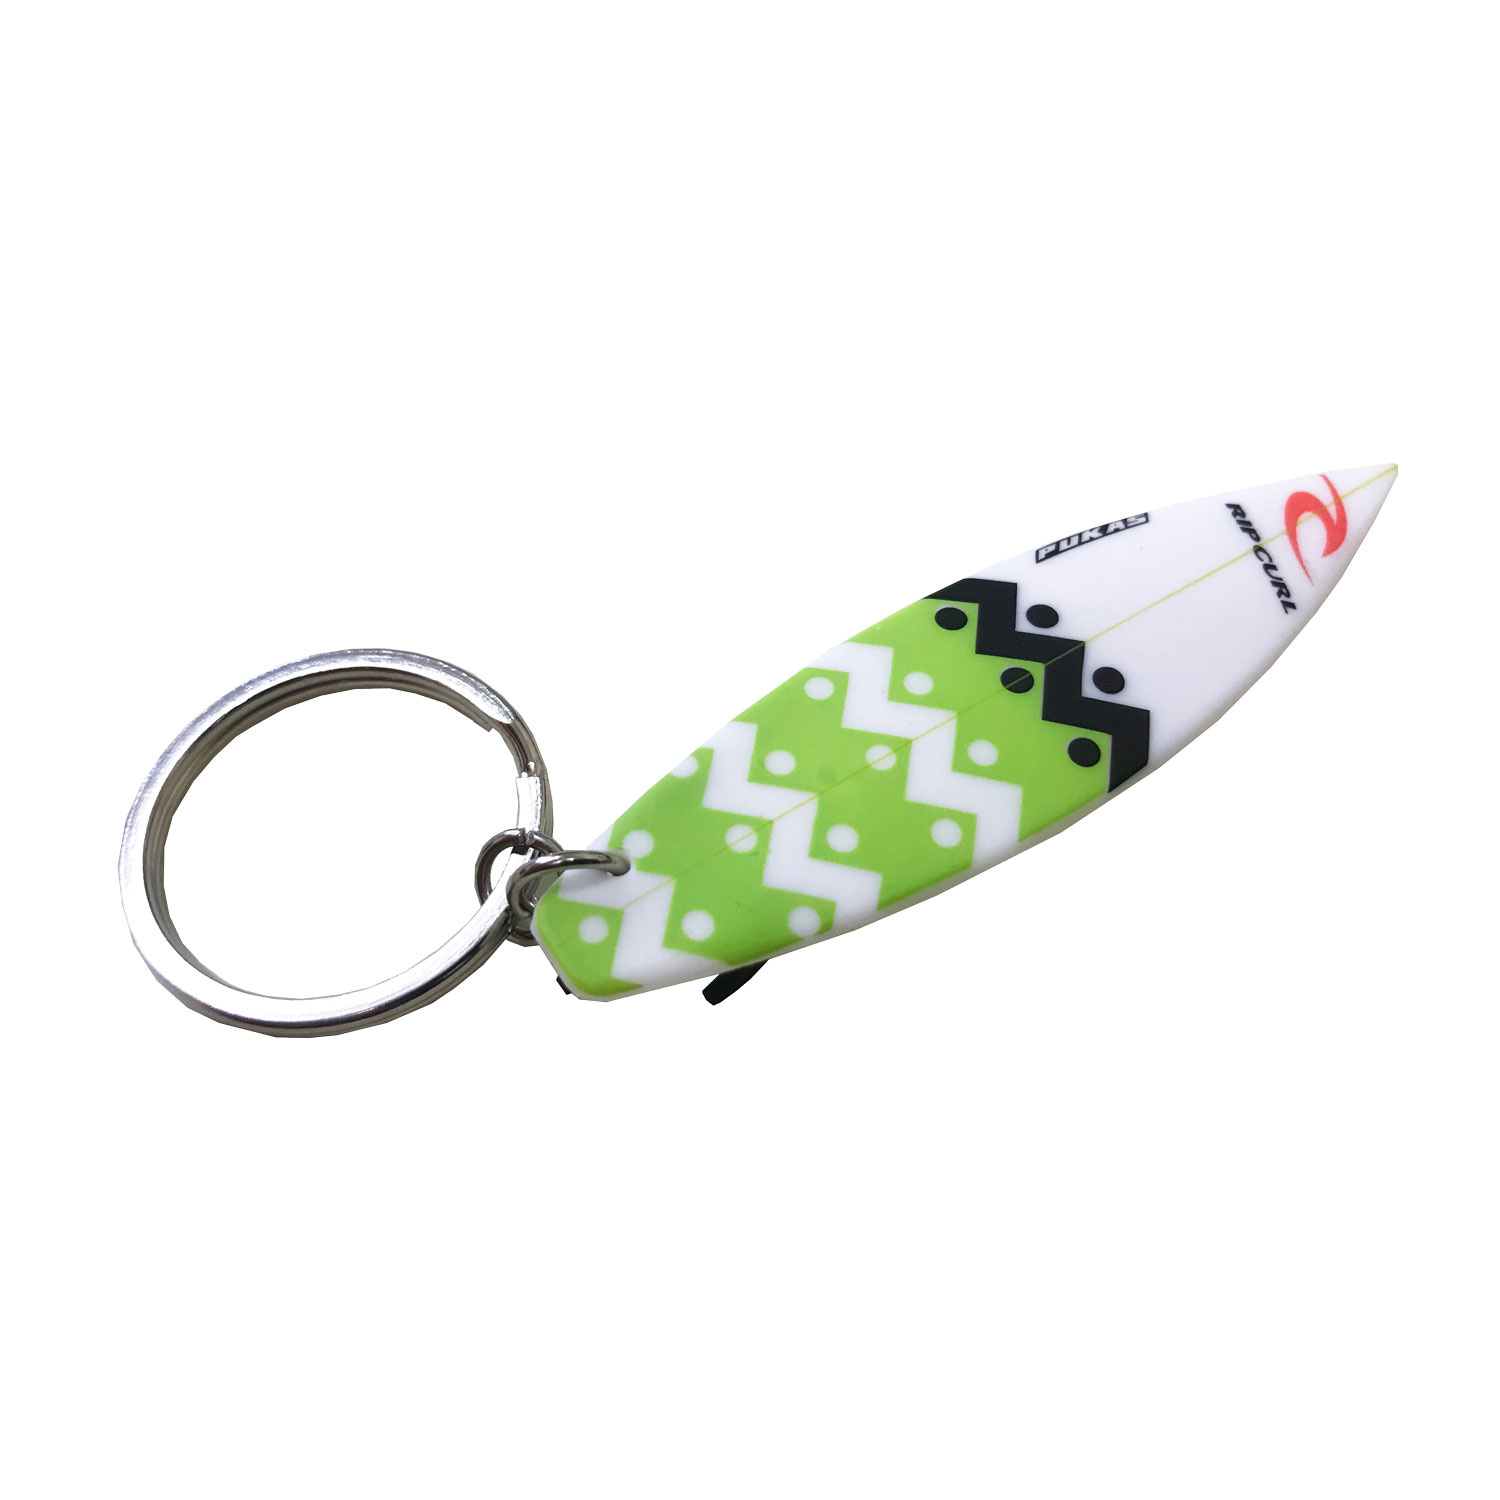 Rip Curl Surfboard Key Ring - Green